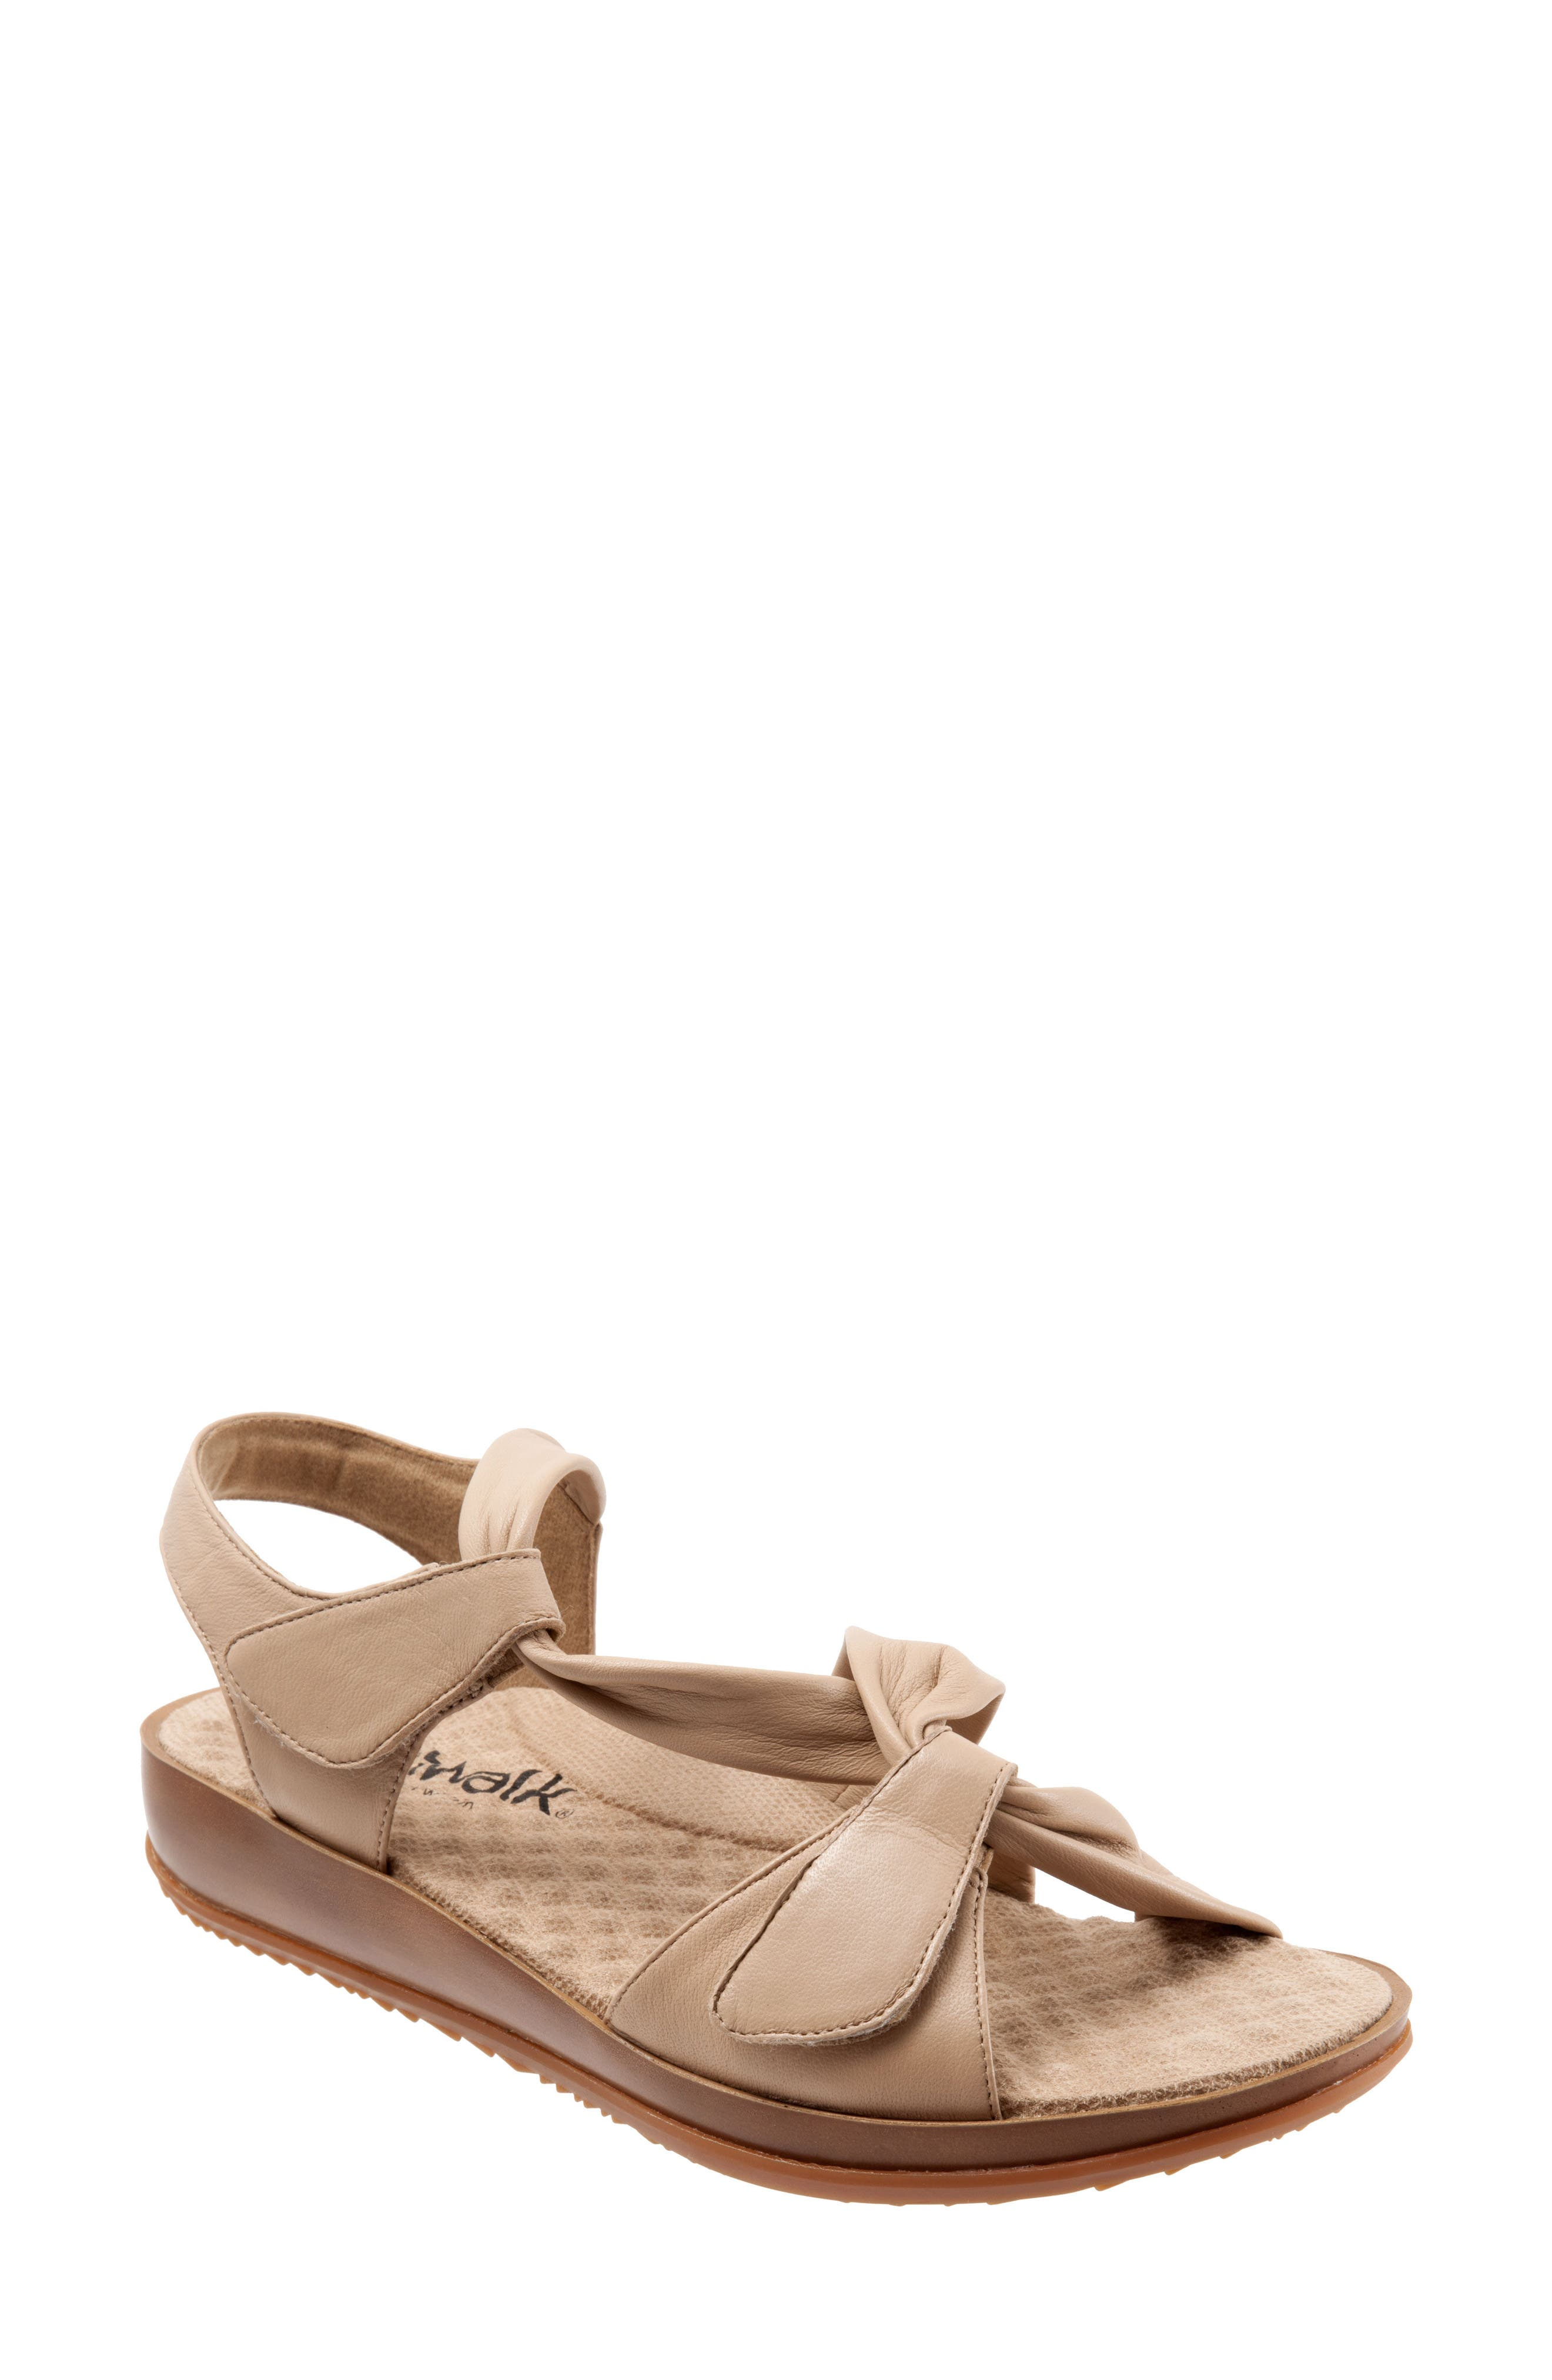 Del Rey Sandal,                         Main,                         color, Nude Leather